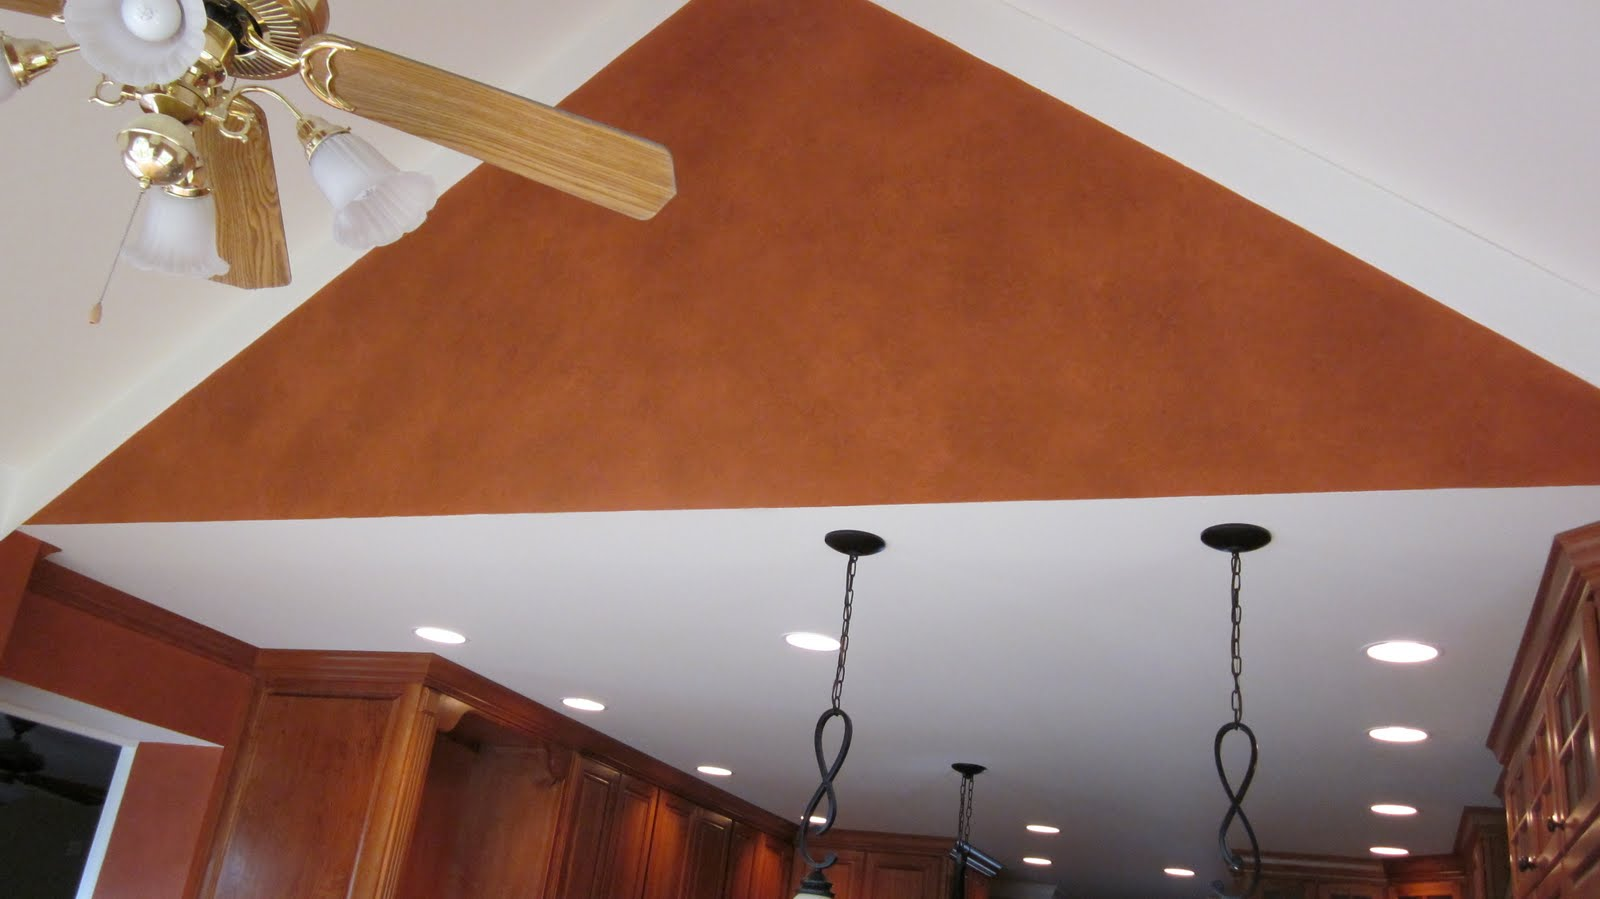 Color That Compliments Terracotta in Kitchen